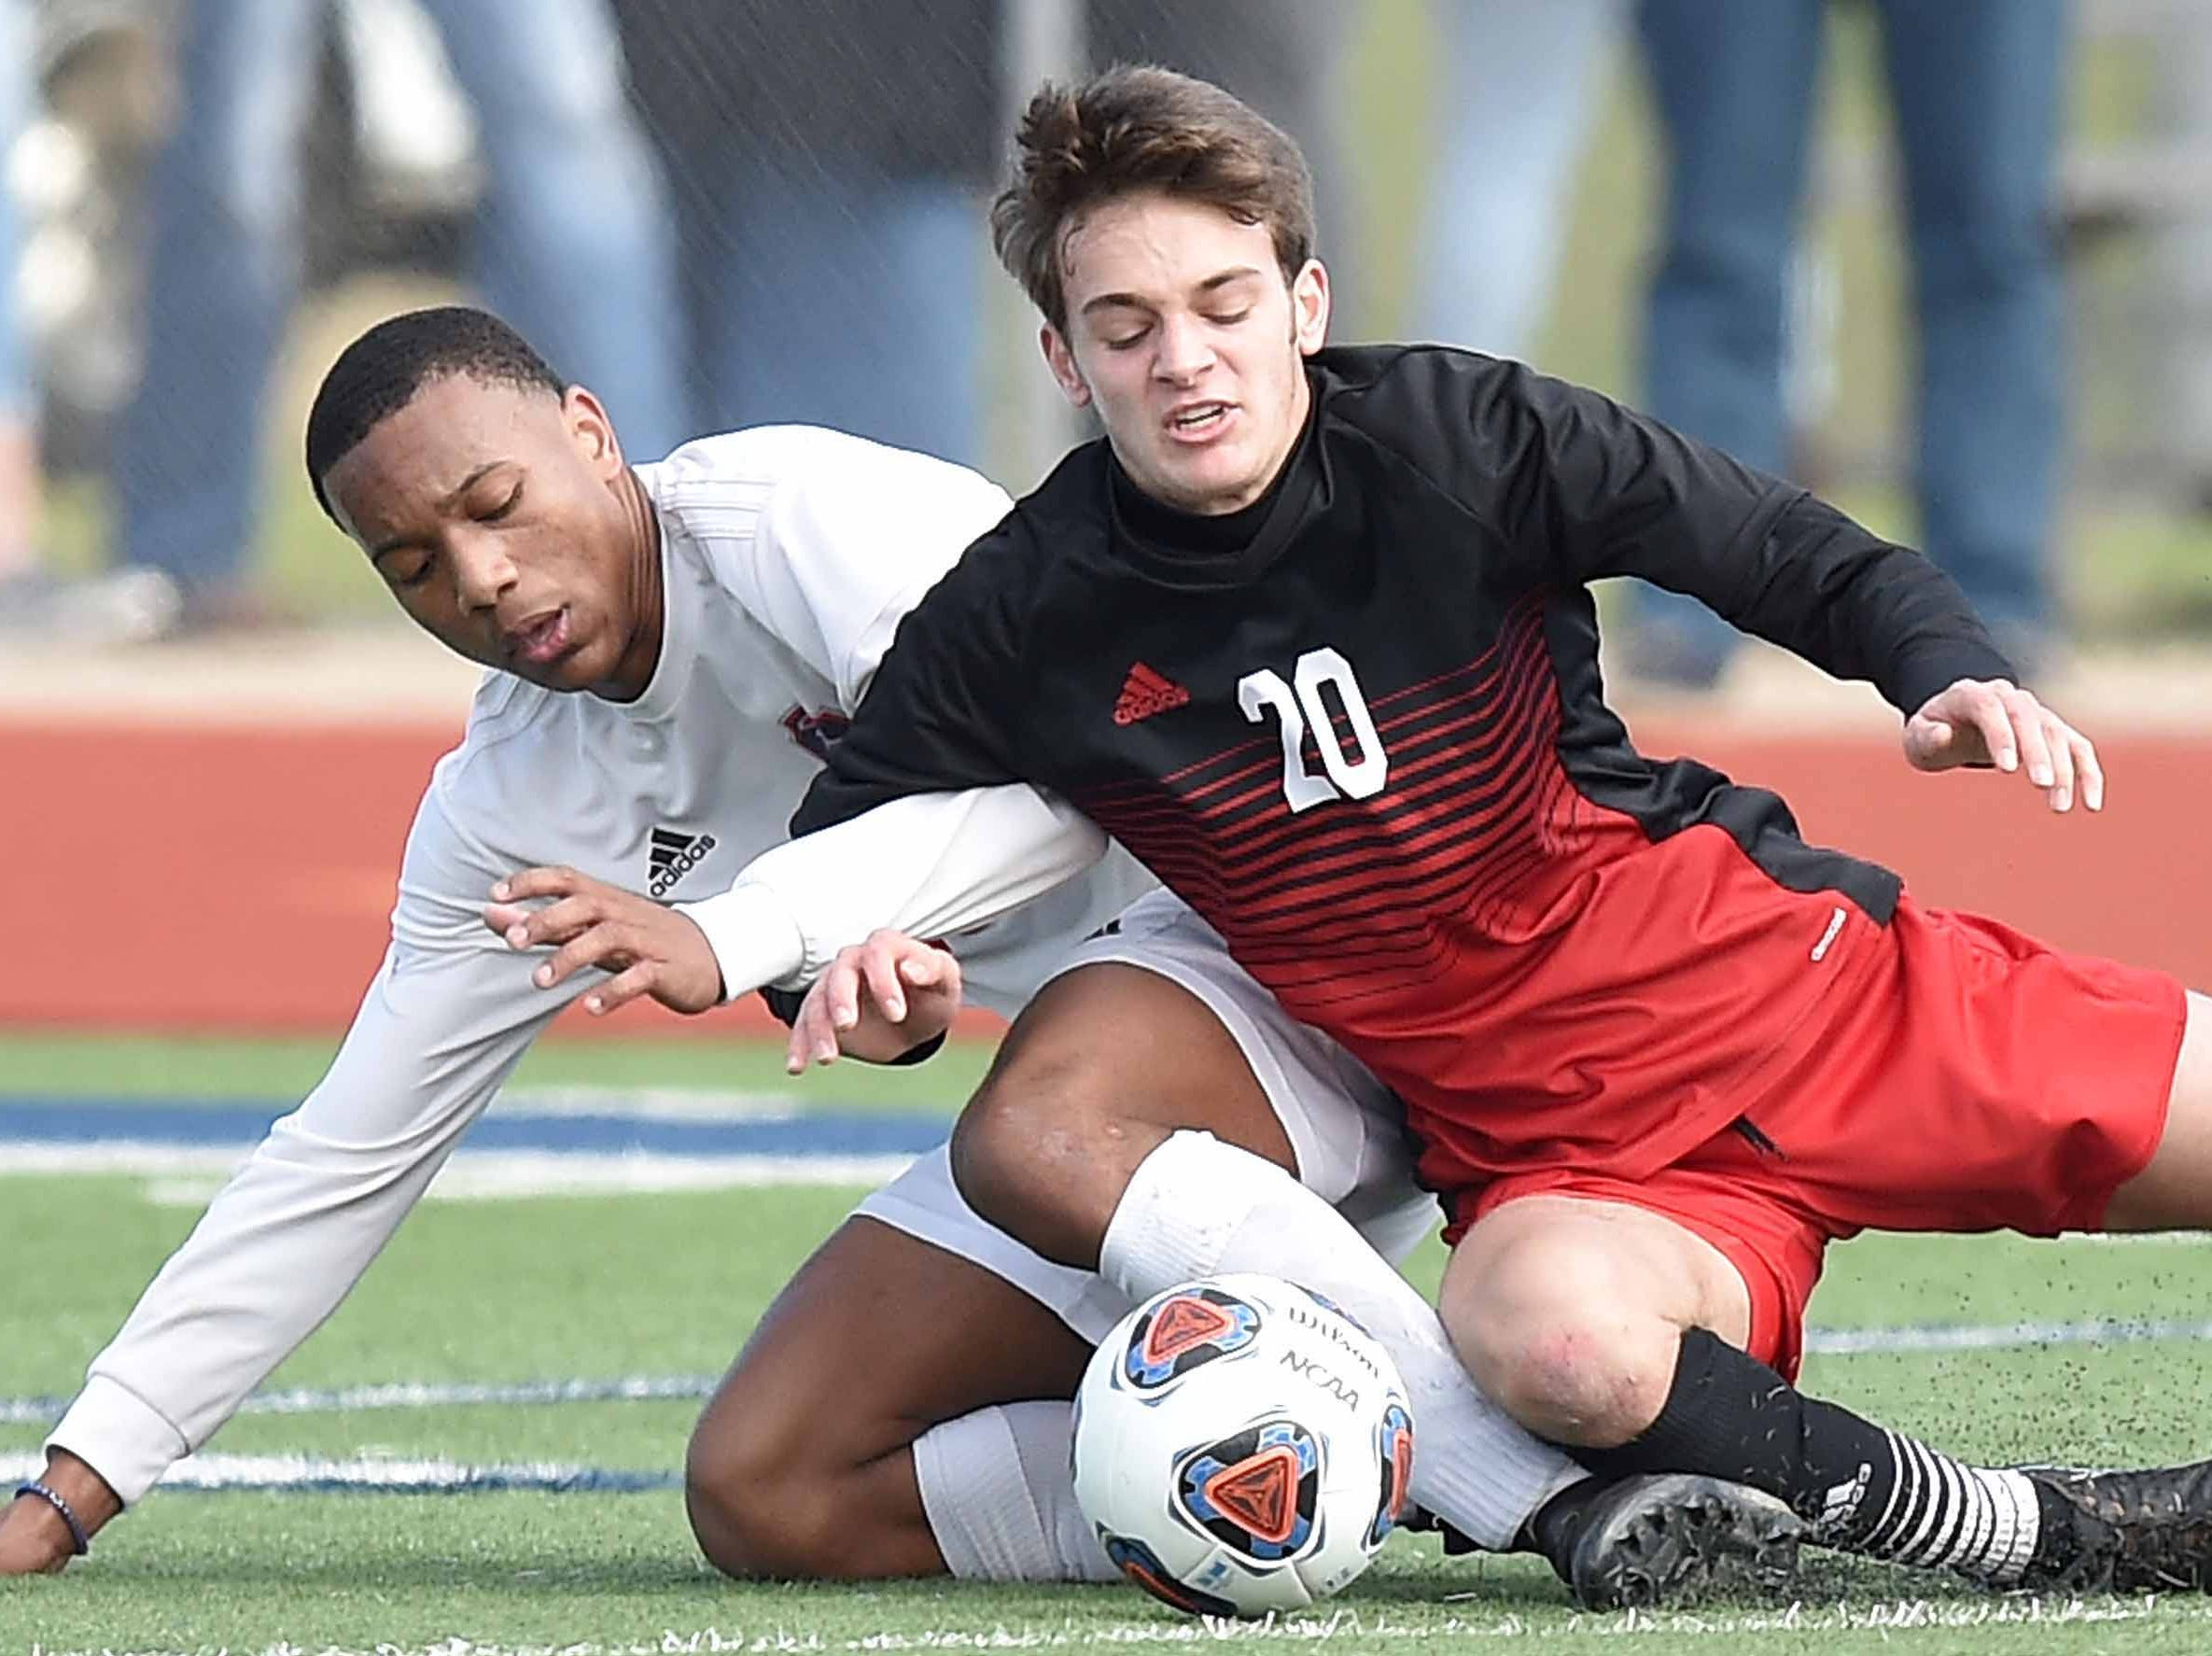 Richland's Greg Anderson (18) and West Lauderdale's Jack Green (20) go to the ground fighting for a ball in the Class 4A state championship in the MHSAA BlueCross Blue Shield of Mississippi Soccer Classic on Saturday, February 9, 2019, at Ridgeland High School in Ridgeland, Miss.